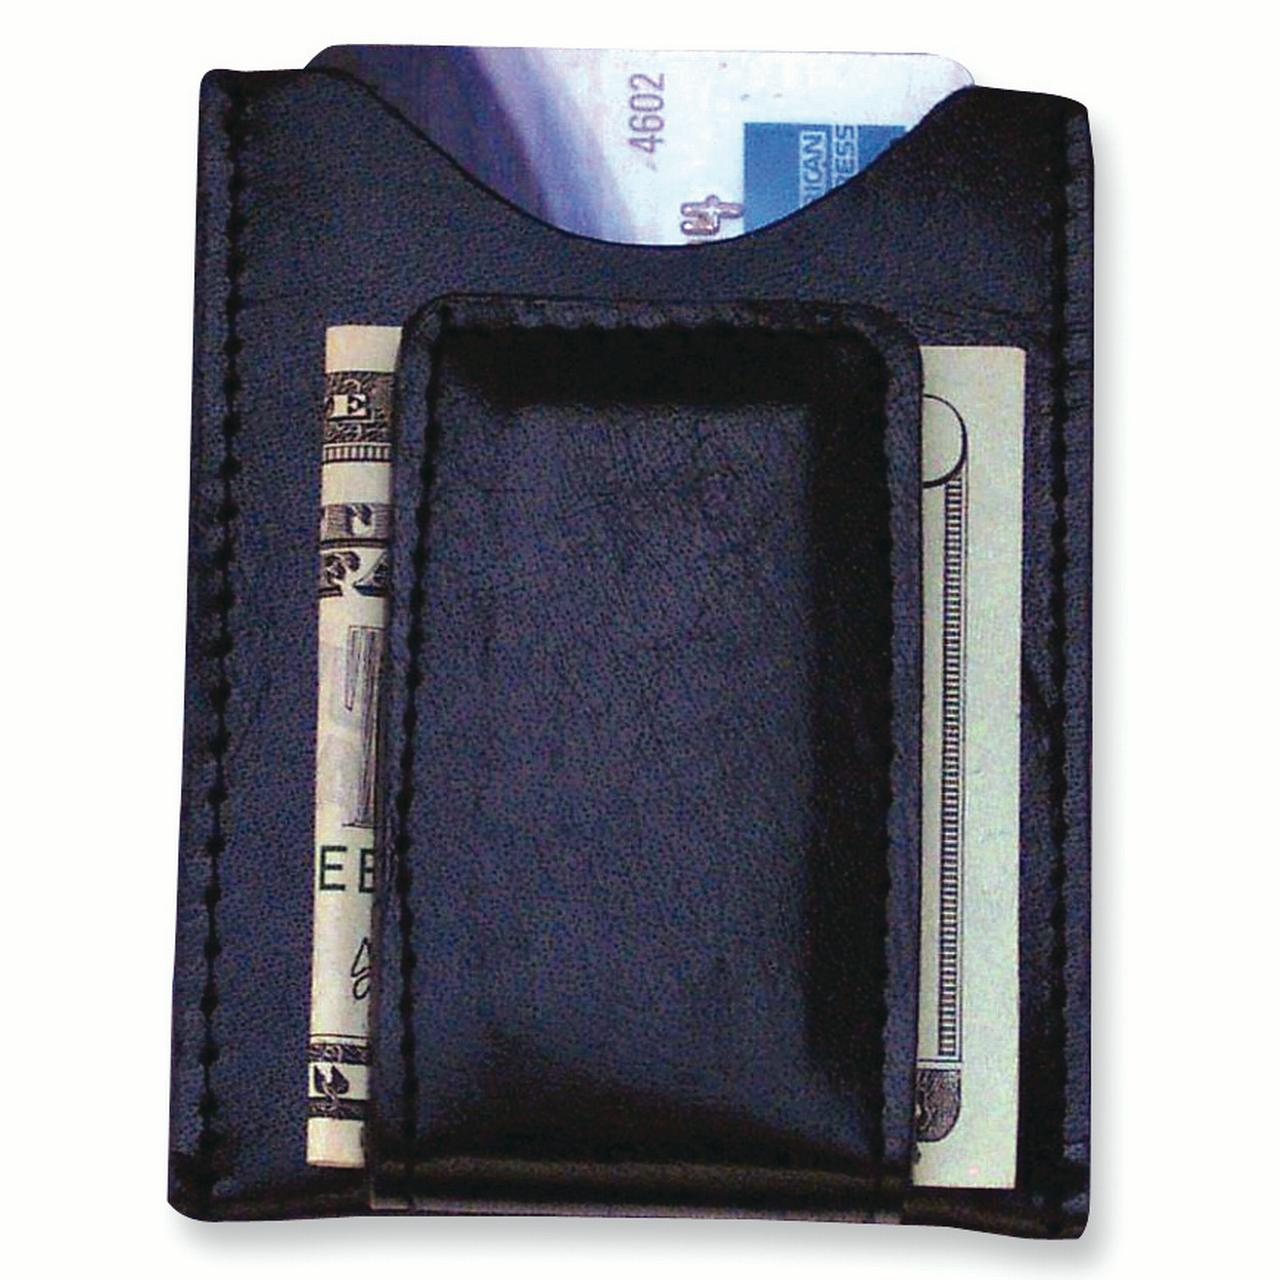 Black Leather Magnetic Front Clip Wallet Man Money Hbag Tote Key Ring Fashion Jewelry Gift For Dad Mens For Him - image 4 of 4